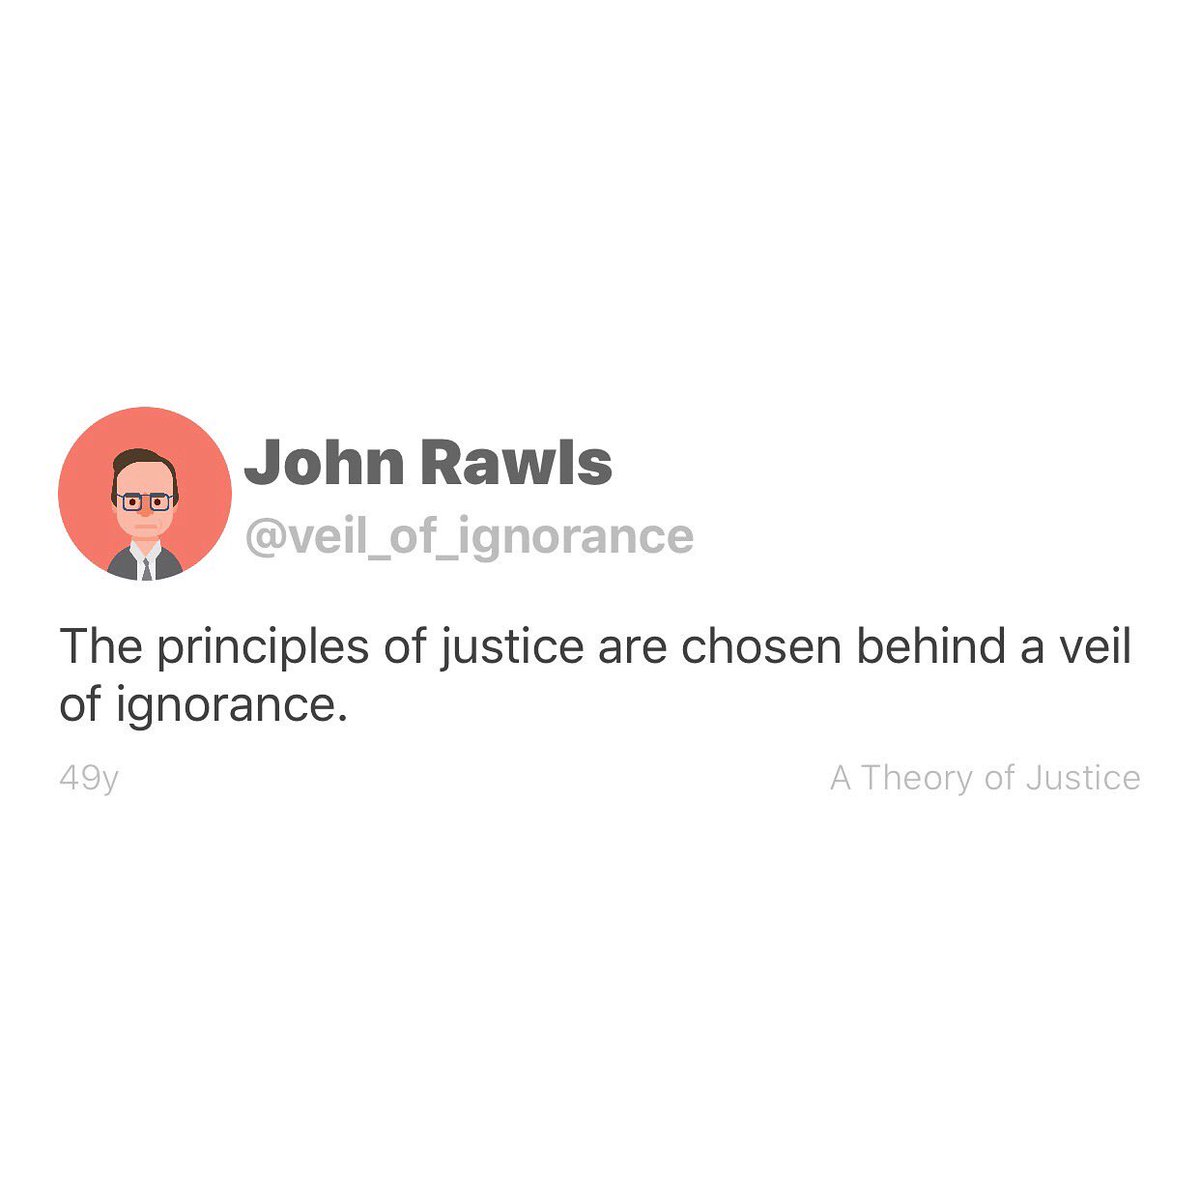 Happy birthday to liberal American moral and political philosopher, John Rawls, born this day 1921 in Baltimore, Maryland, USA.  #philosophy #philosophyquotes #johnrawlspic.twitter.com/96ALjEw6Oh